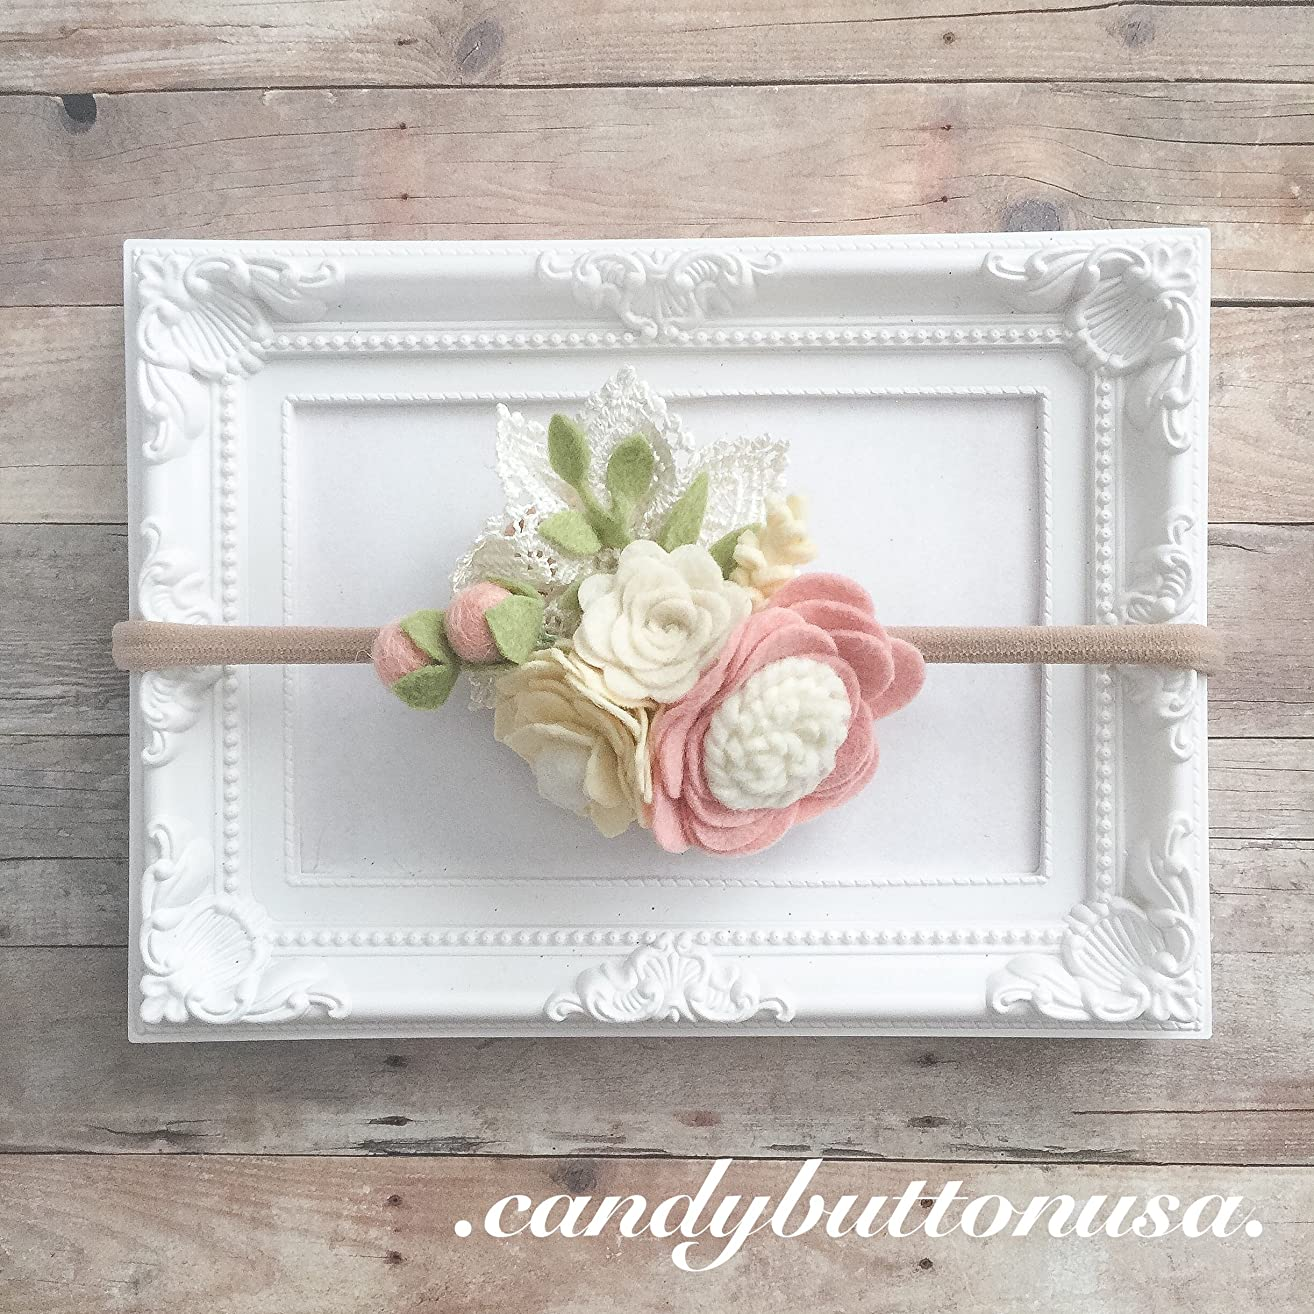 Blush Felt Baby Headband | Floral Crown | Felt Headband | One Size Fits Most